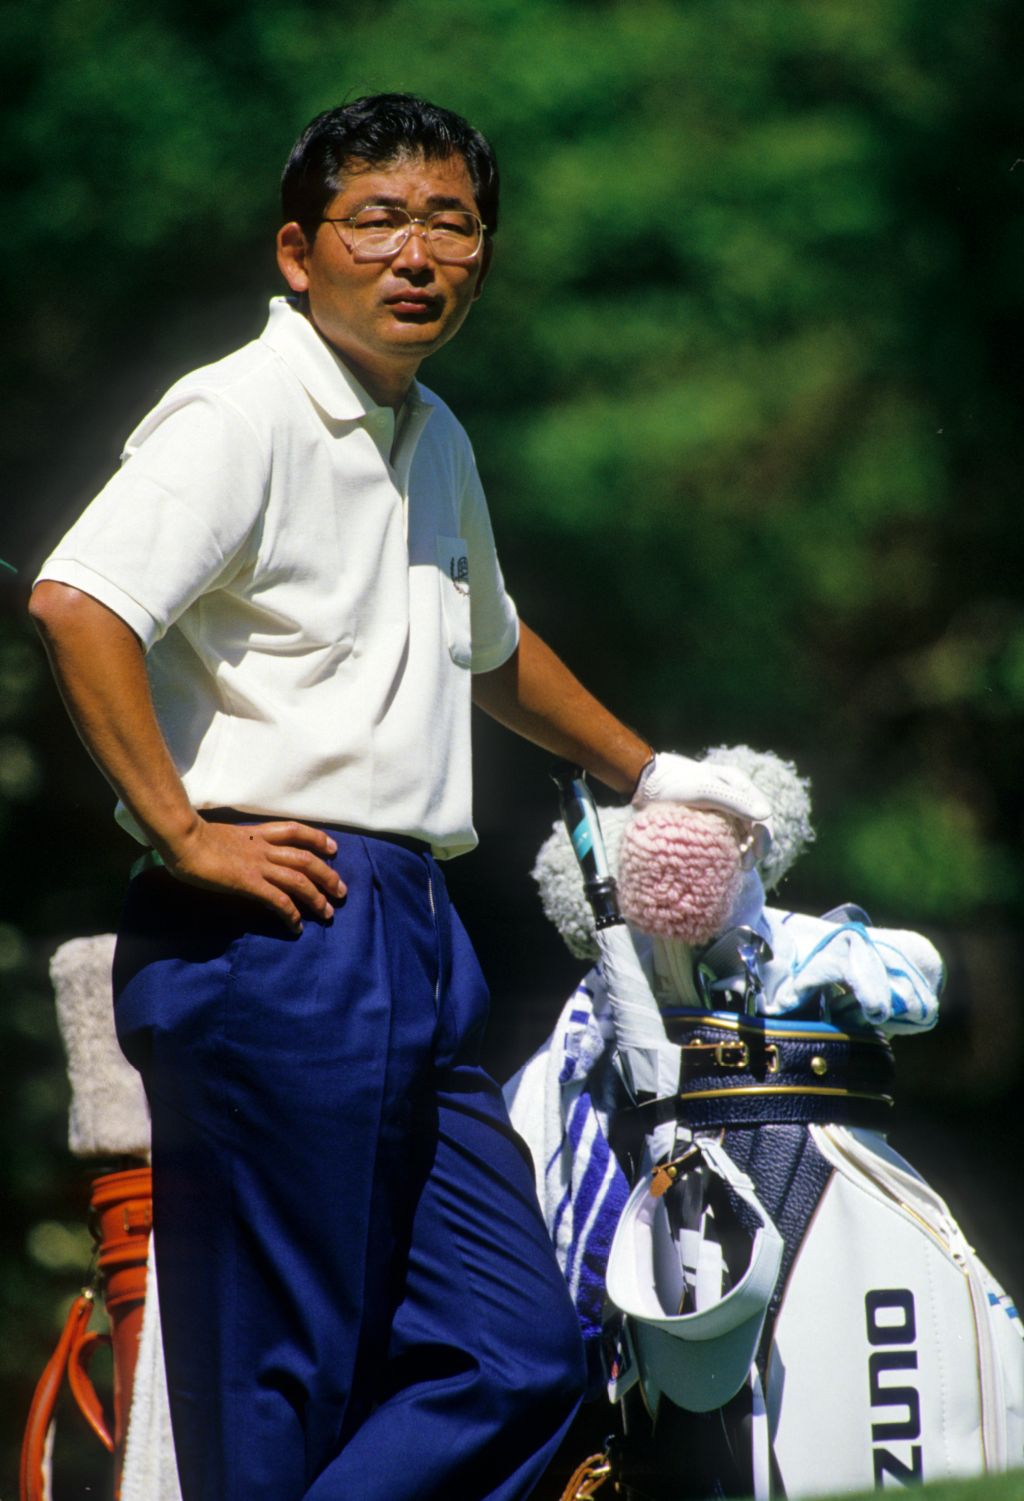 Tommy Nakajima looking thoughtful on the tee during the 1988 Masters